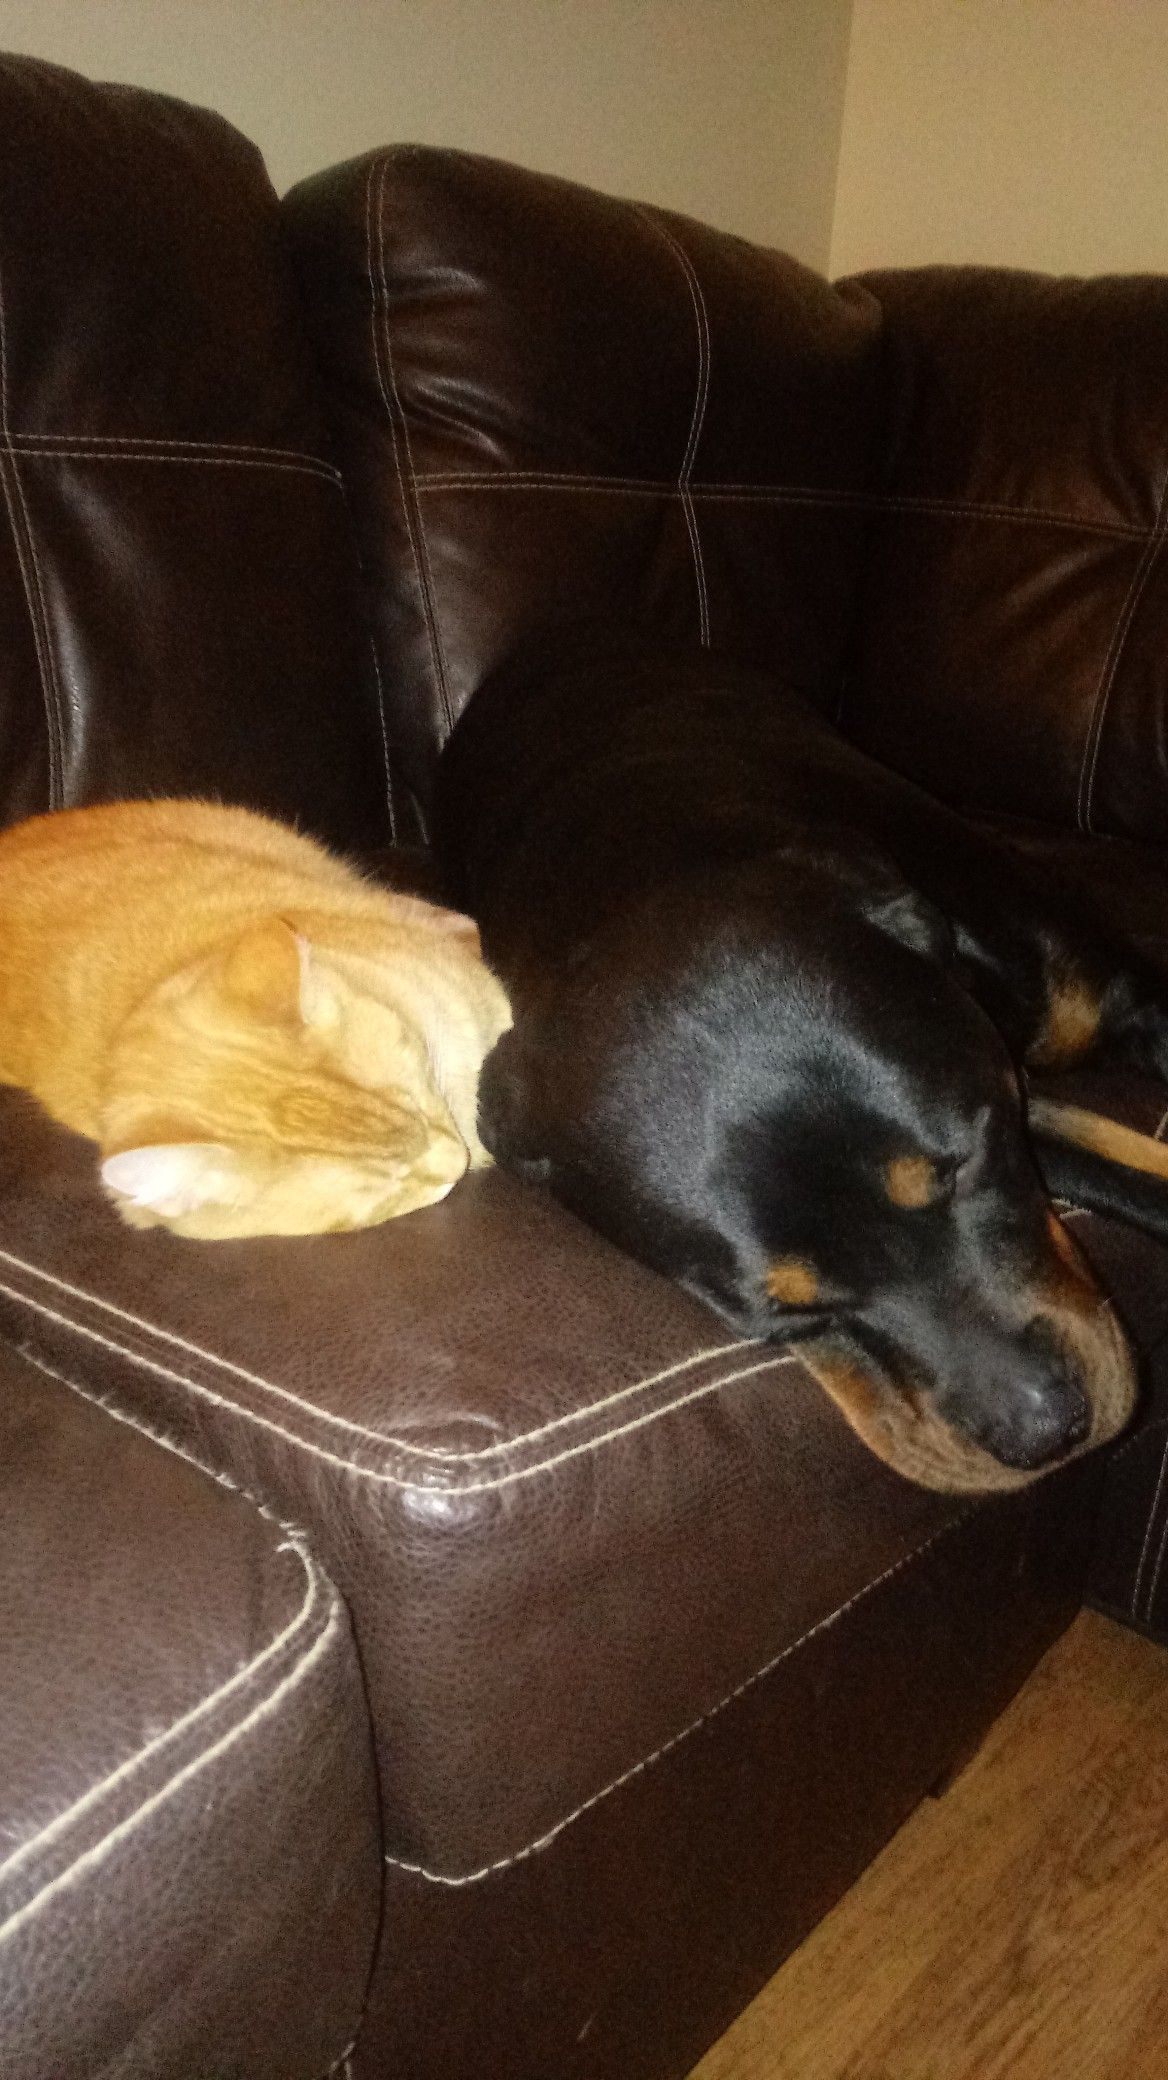 Nelson the cat spooning with Gemma the Rottweiler..